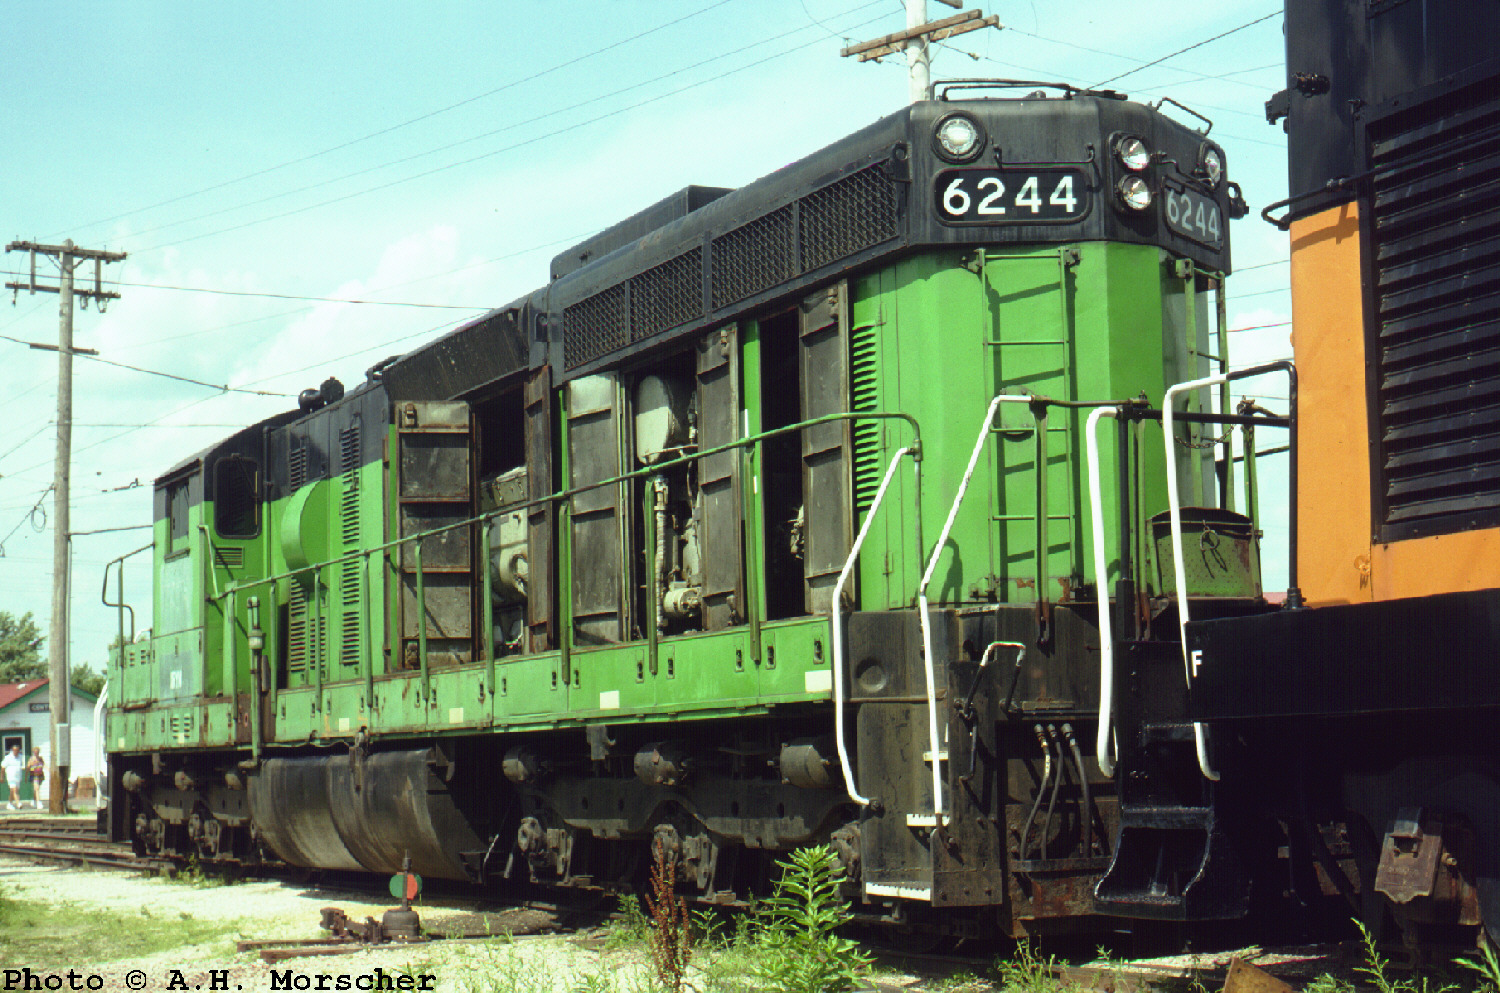 Morscher S 1989 Railroad Images Sorted By State Then By